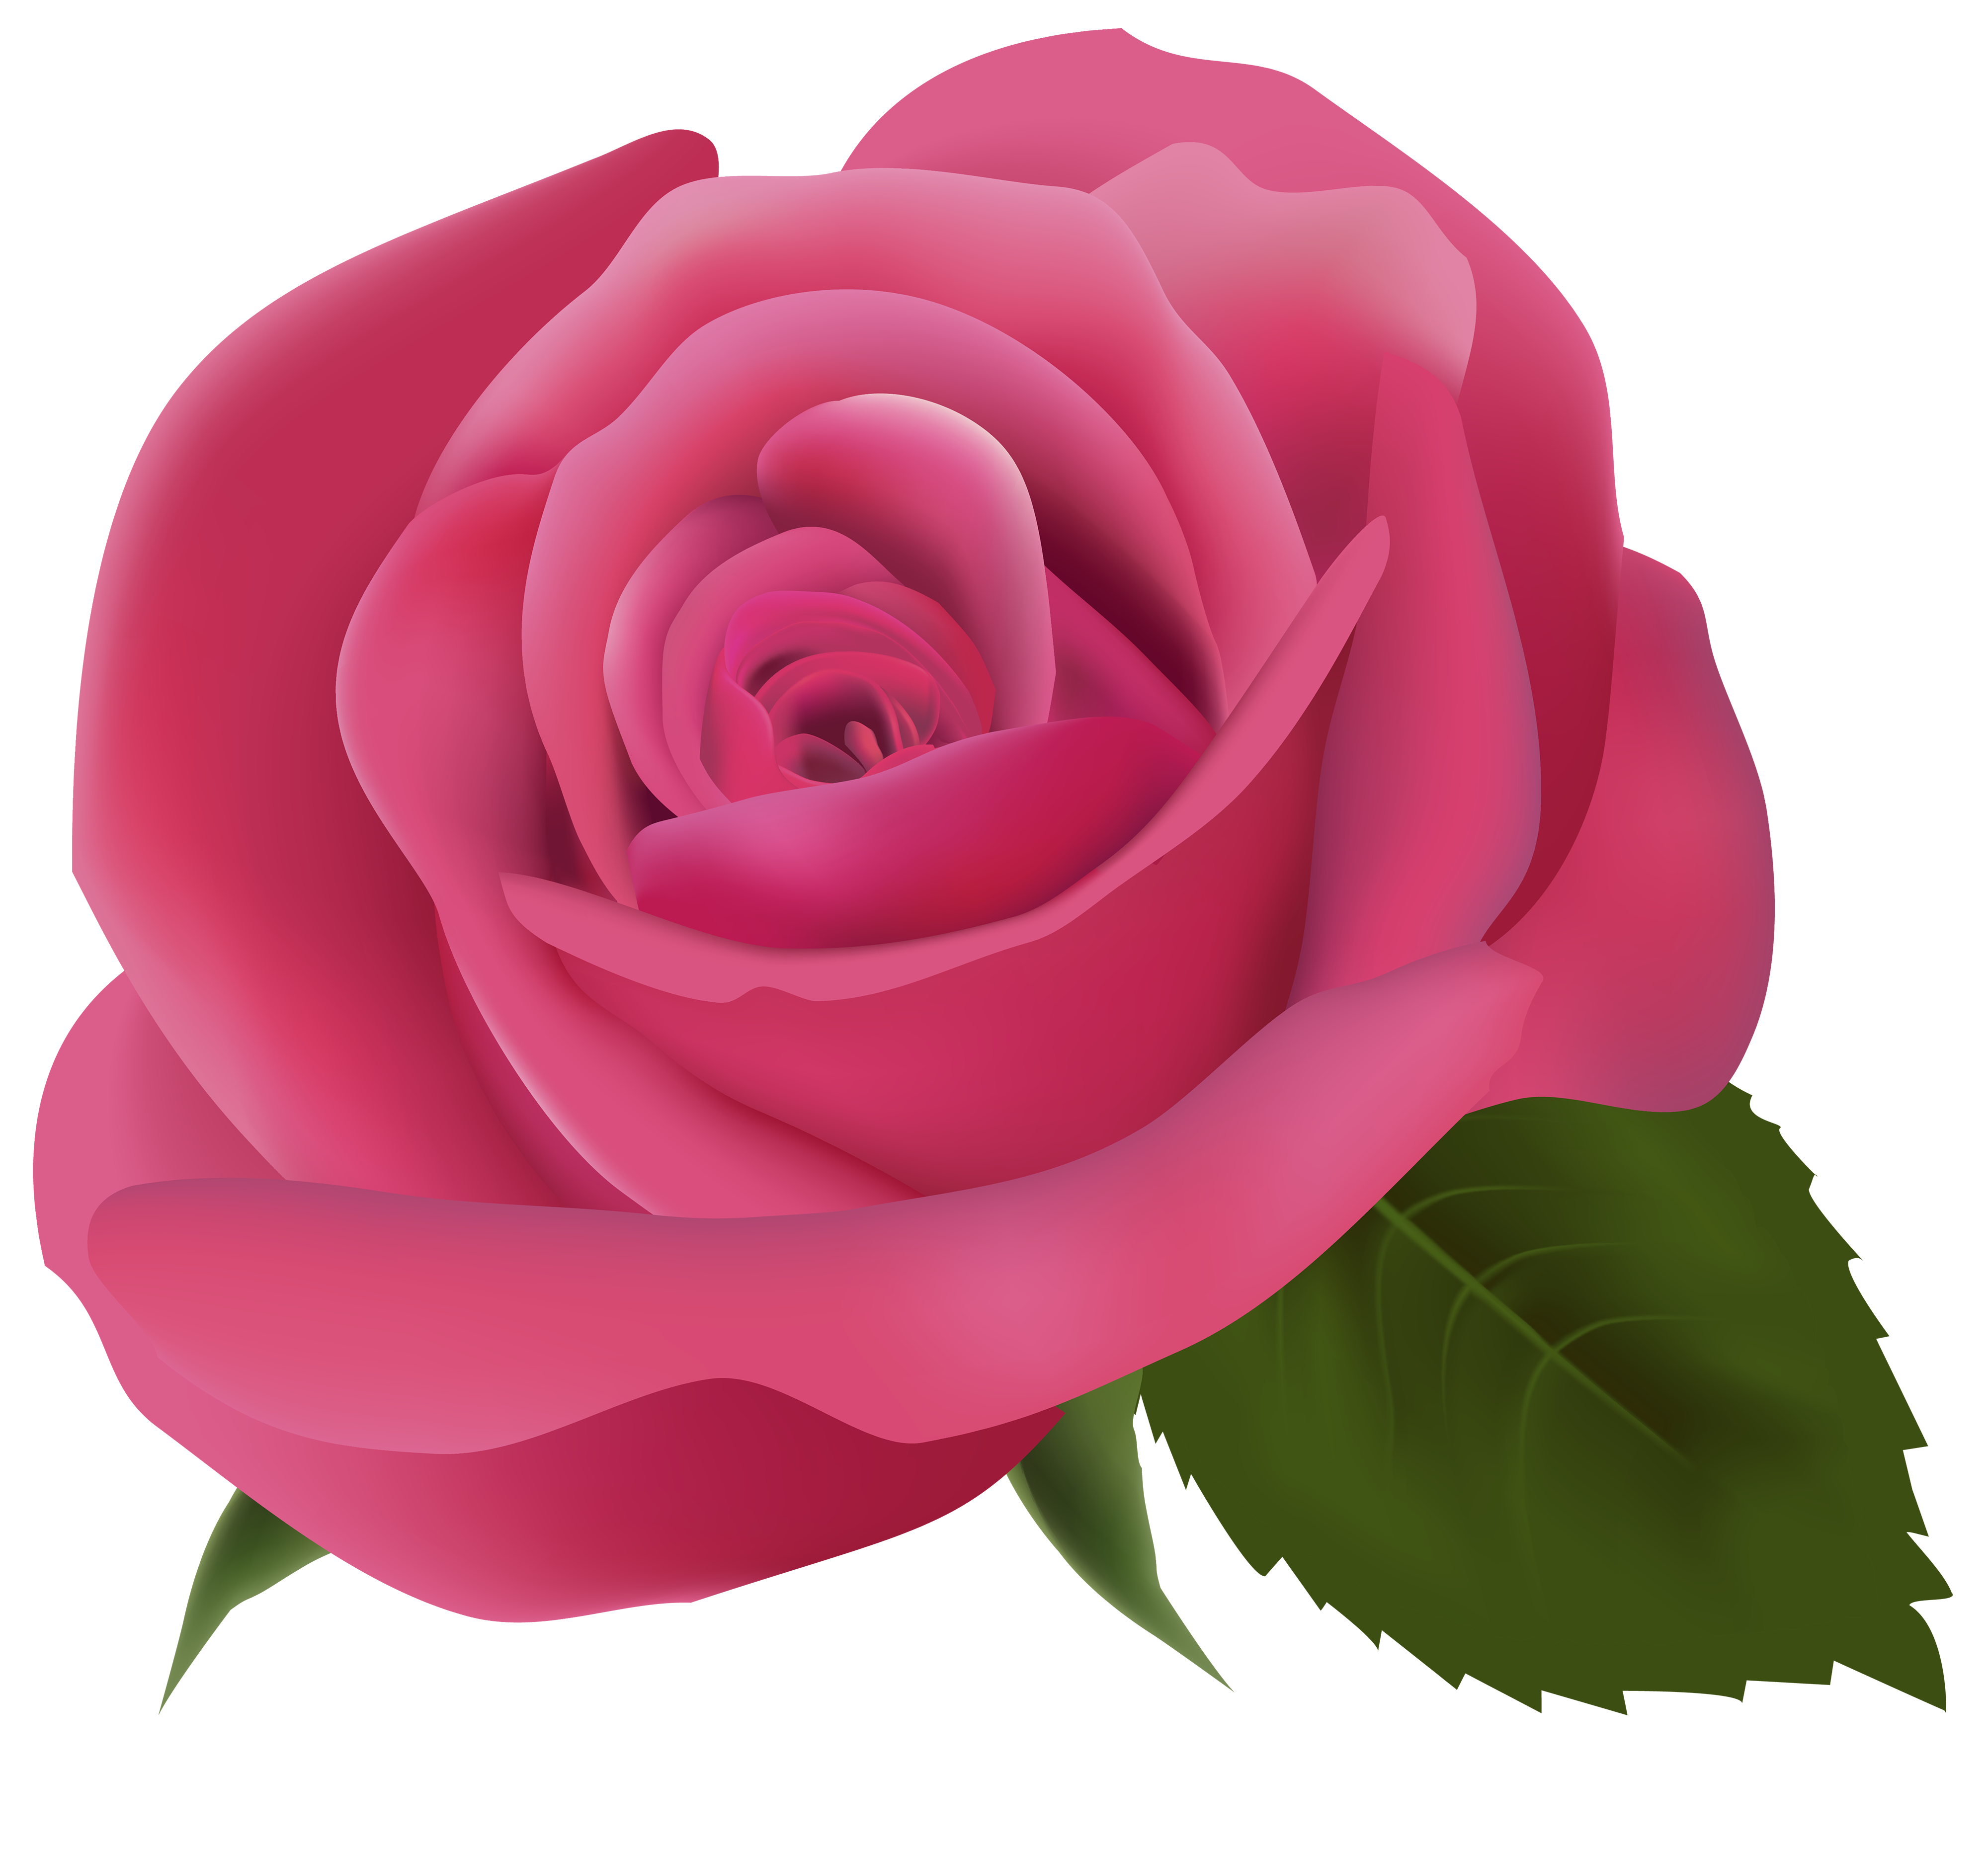 Pink rose flower clipart svg freeuse stock Pink Rose PNG Clipart Image - Best WEB Clipart svg freeuse stock